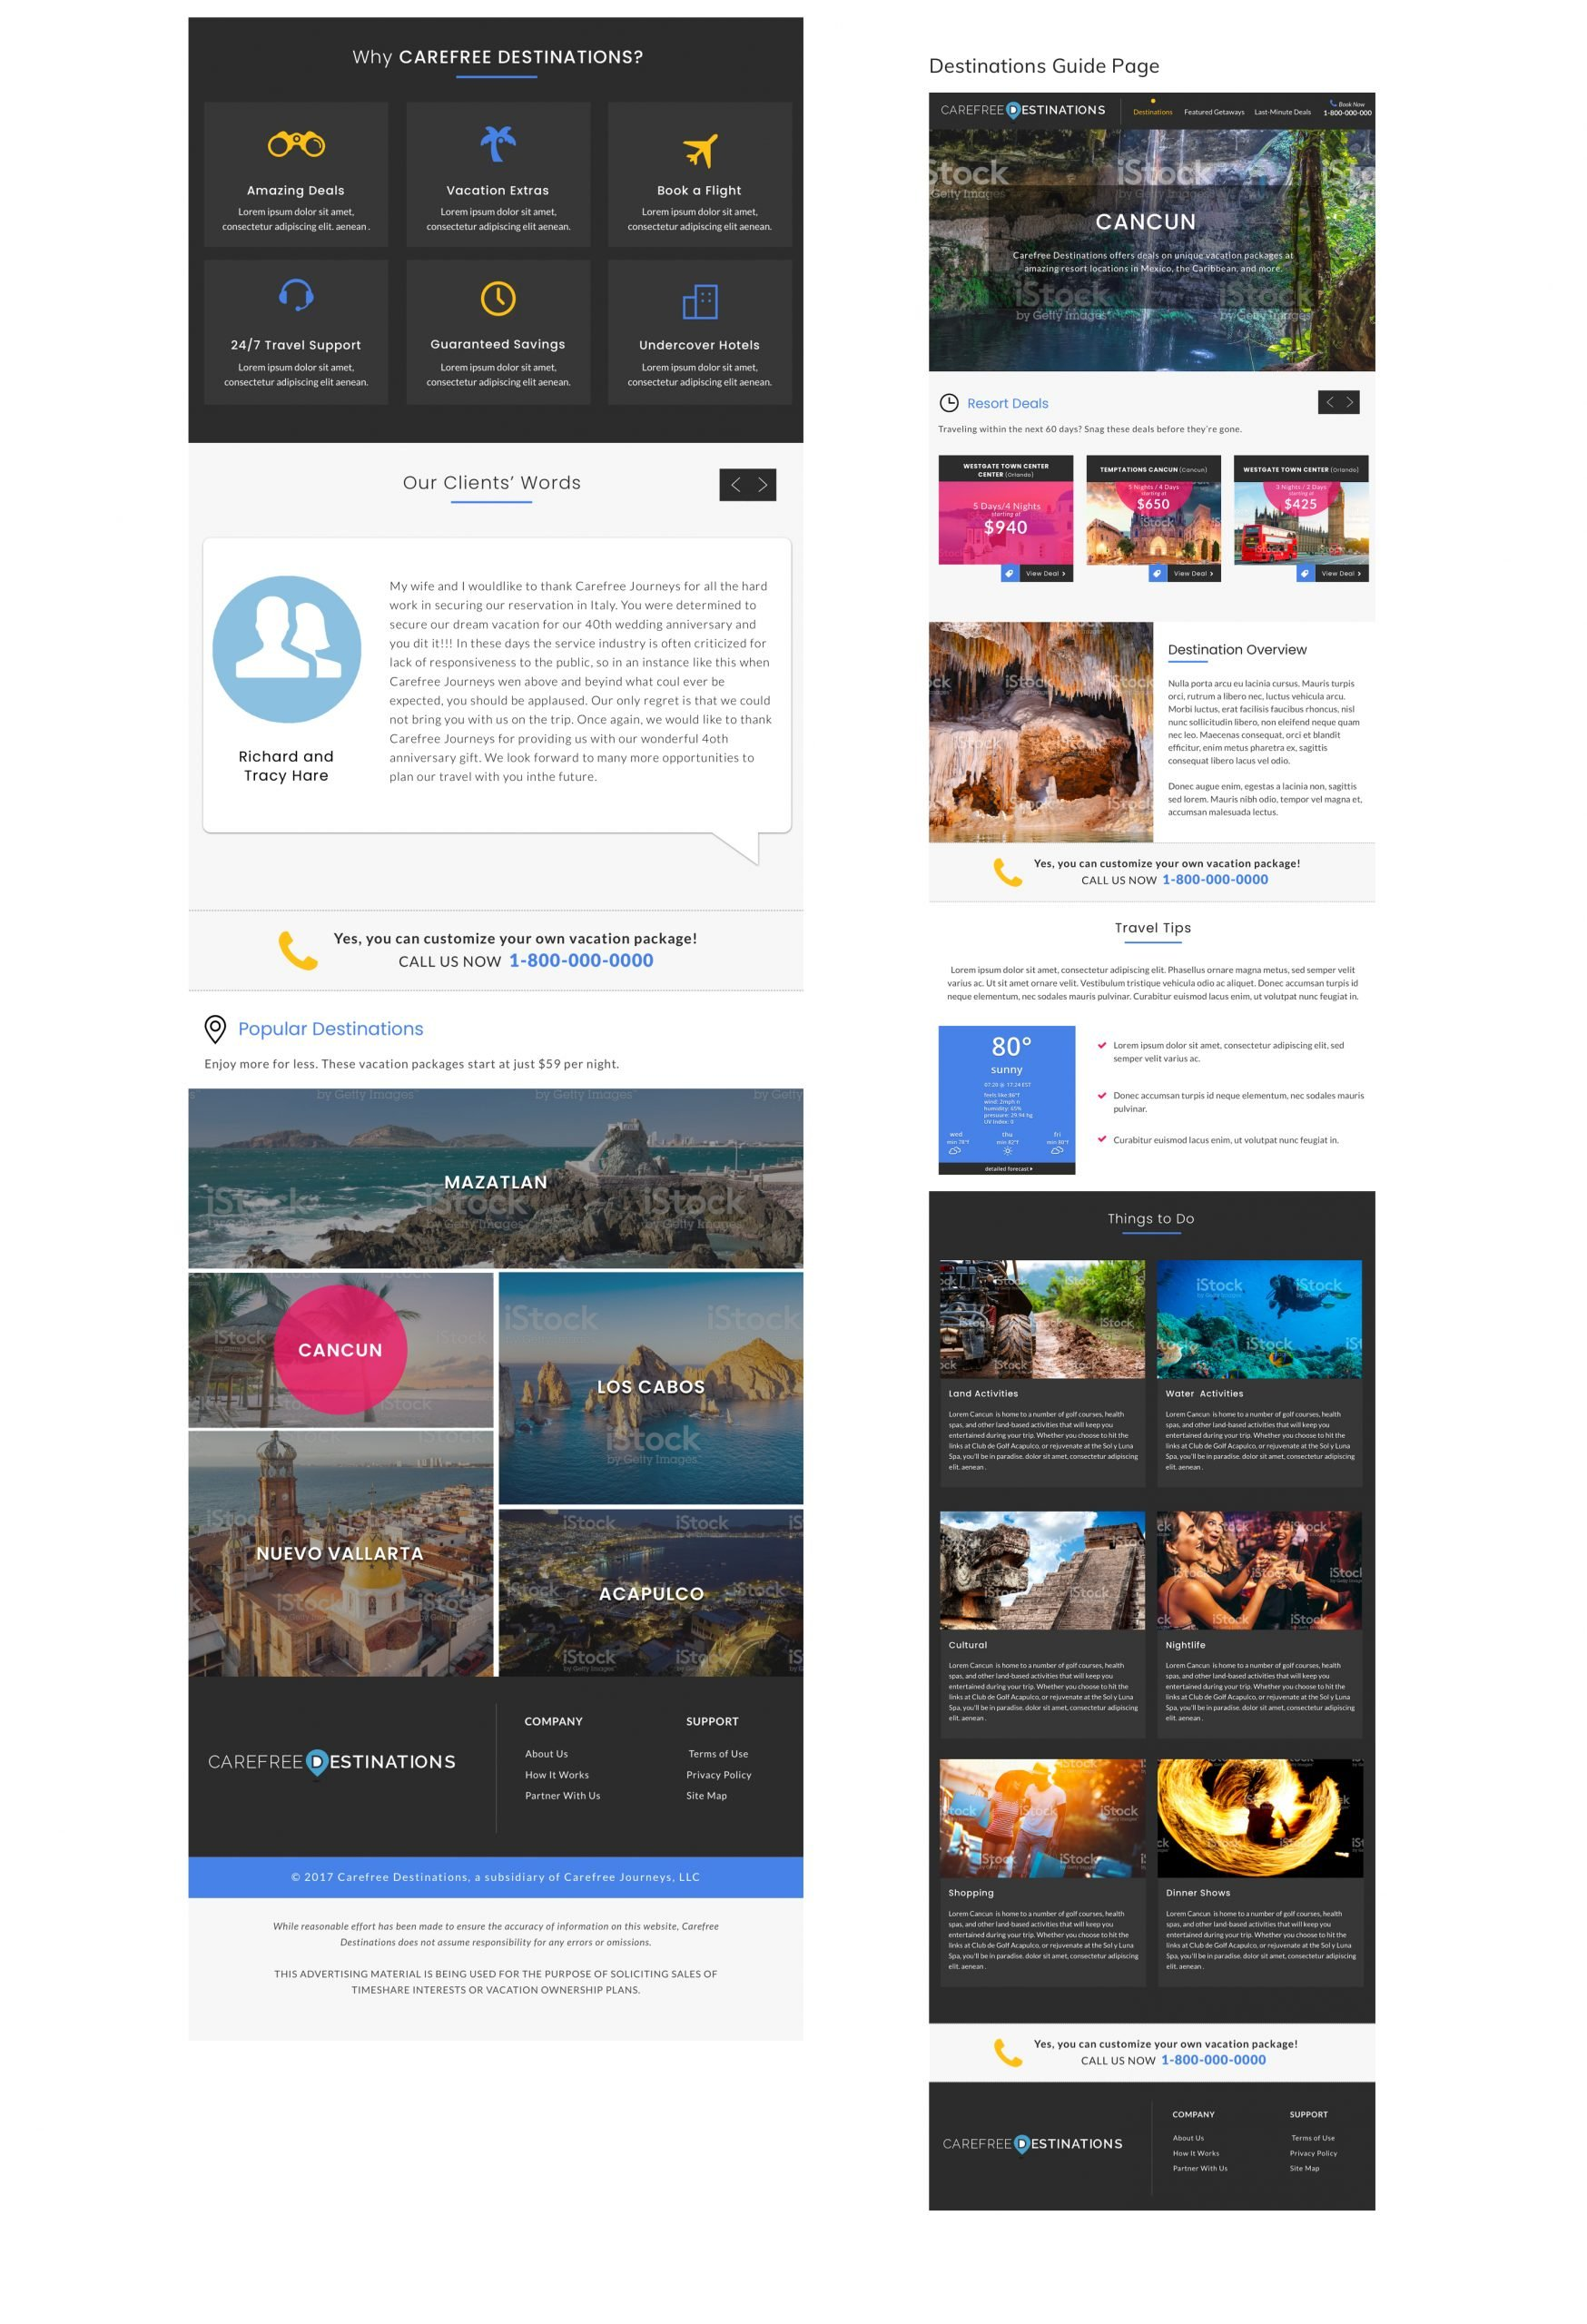 Carefree Destinations Home and Destination Guide Pages